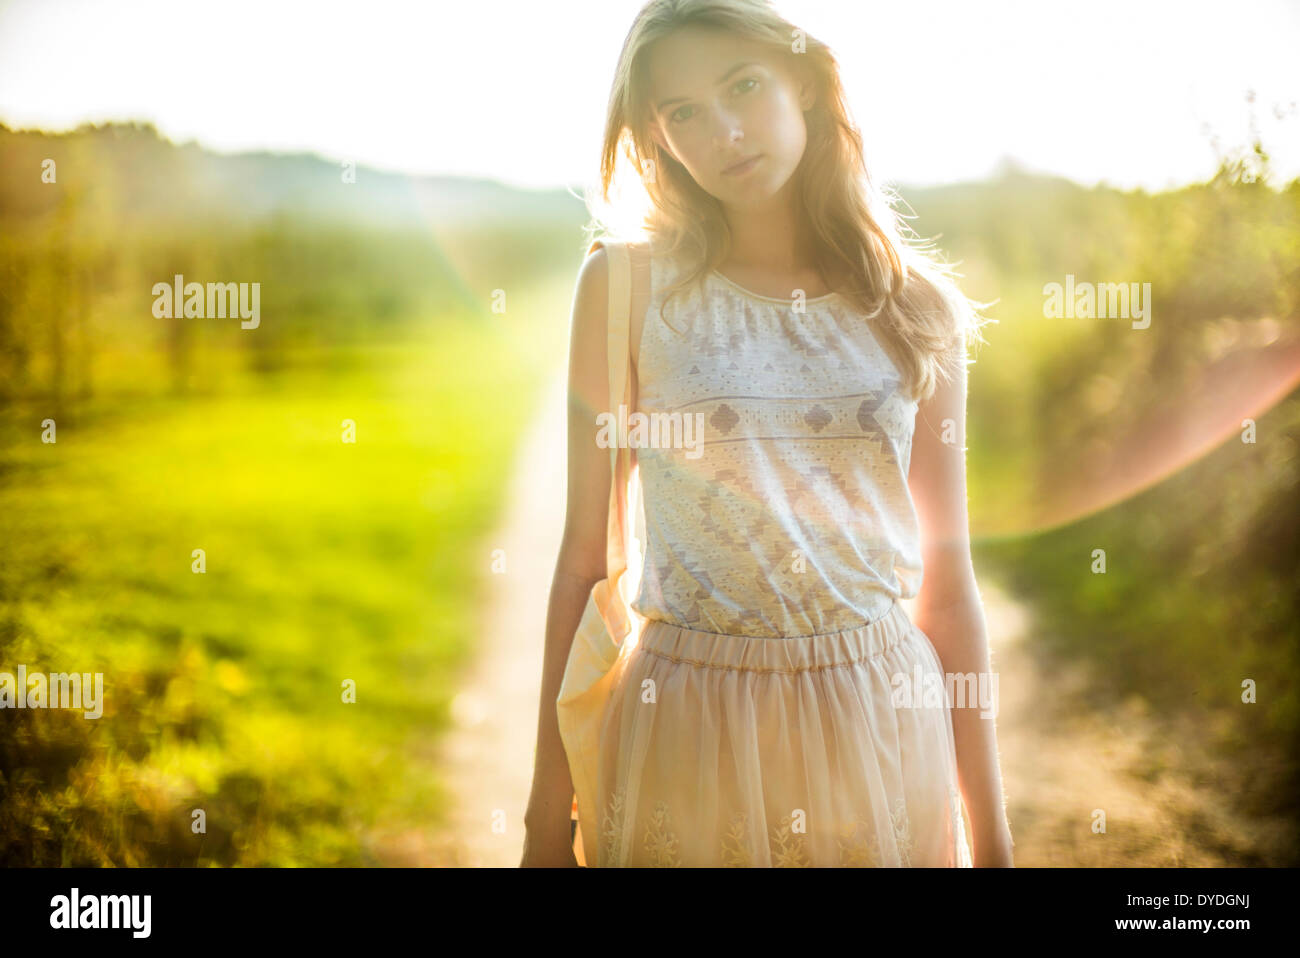 Daydreaming girl in the countryside. - Stock Image